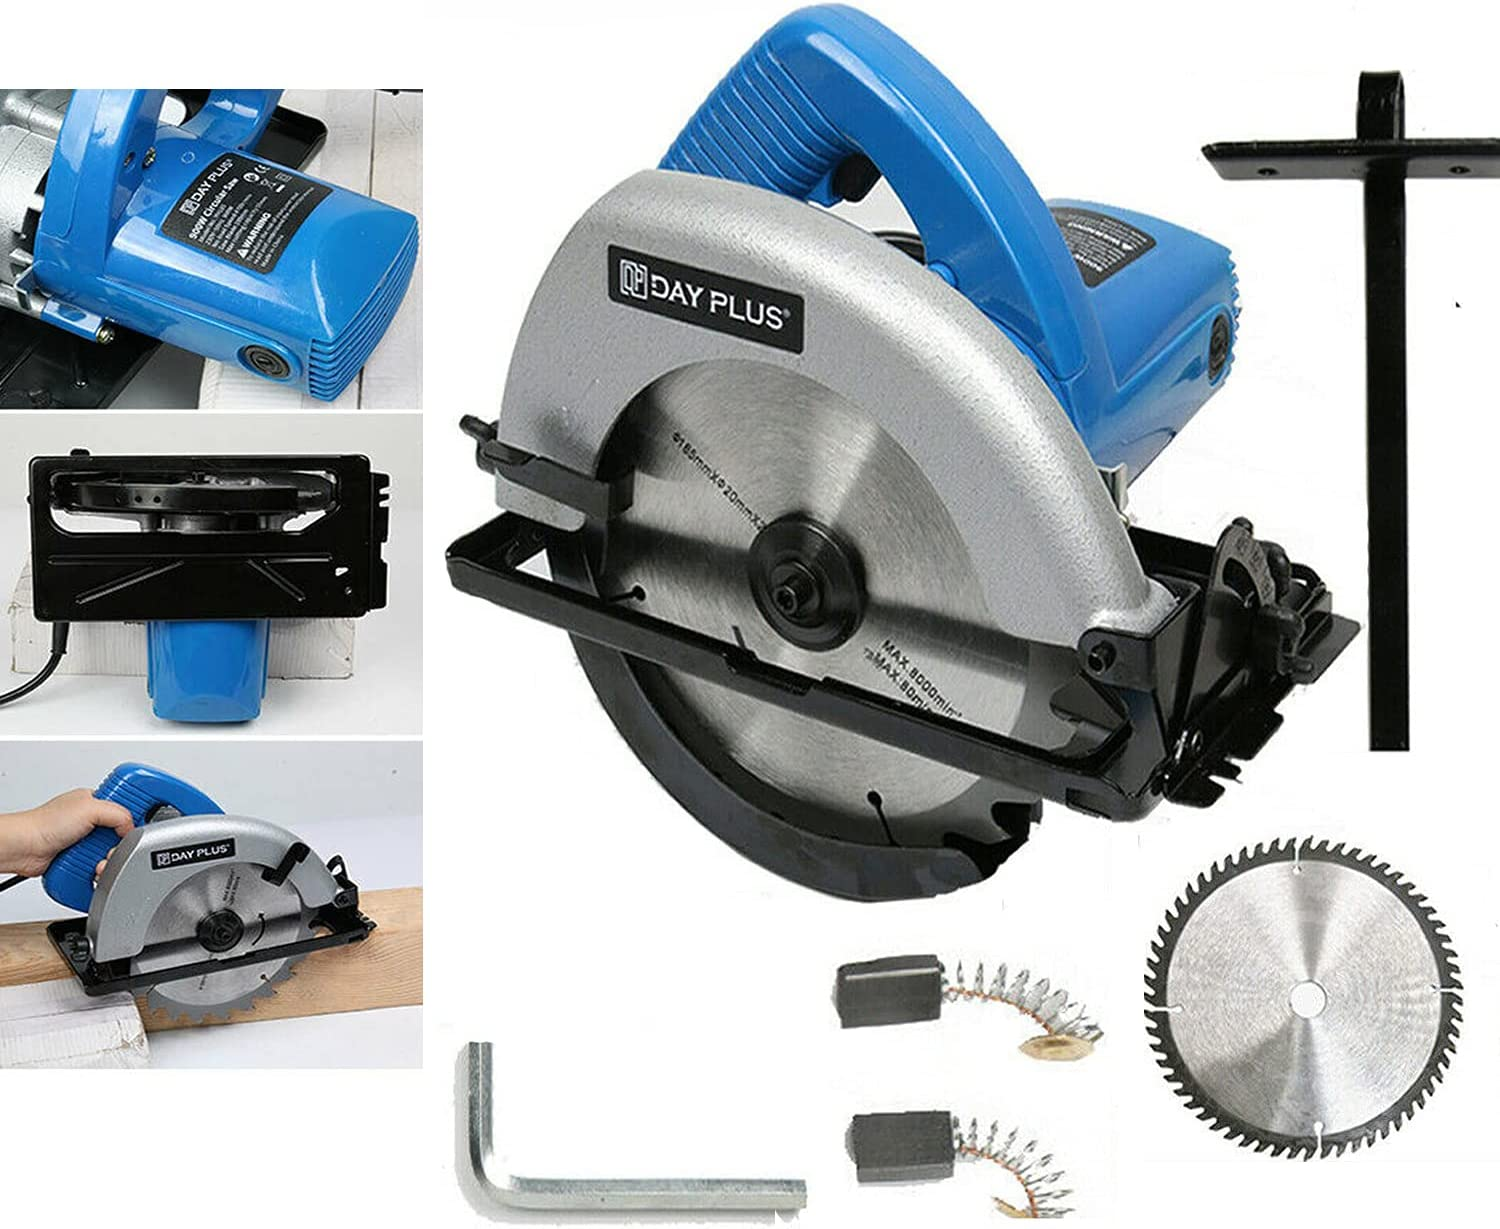 Circular Saw Double Safety Tool 900W Electric Power Daily Low price bargain sale